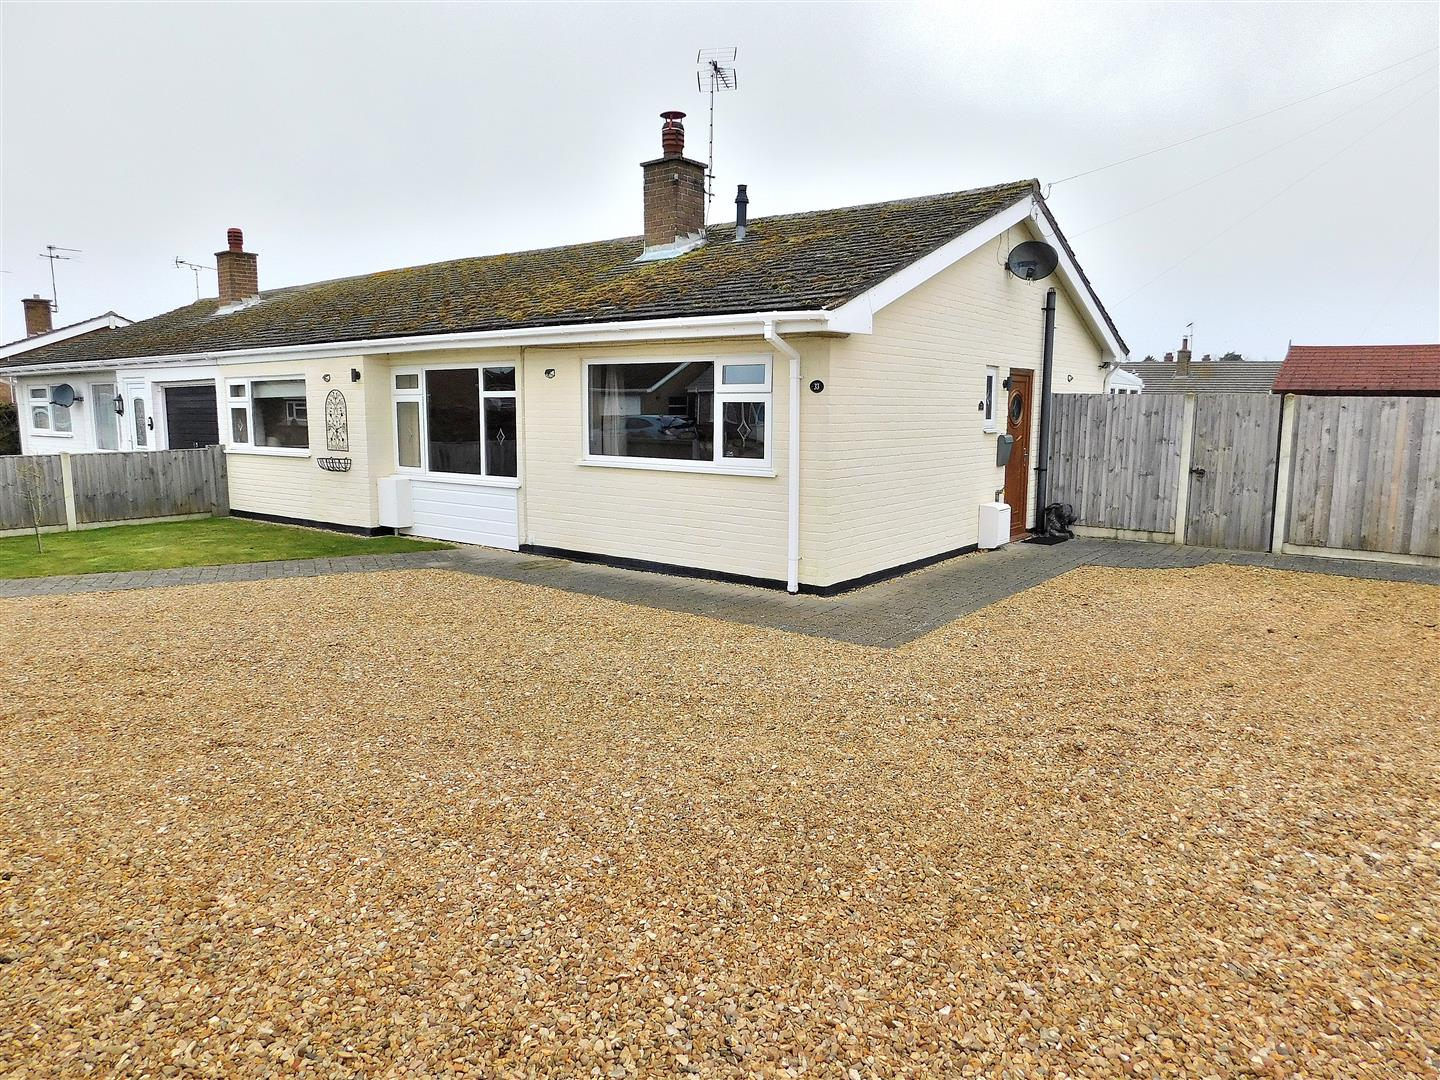 3 bed semi-detached bungalow for sale in King's Lynn, PE31 7BW, PE31